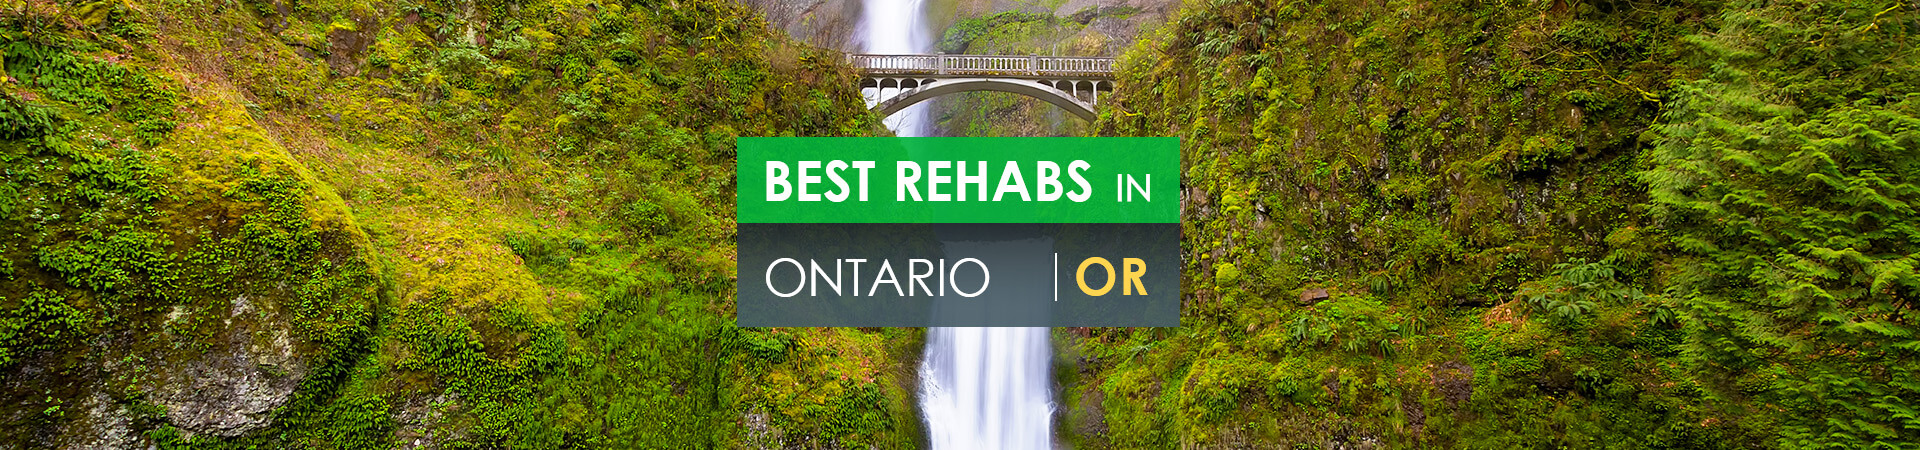 Best rehabs in Ontario, OR